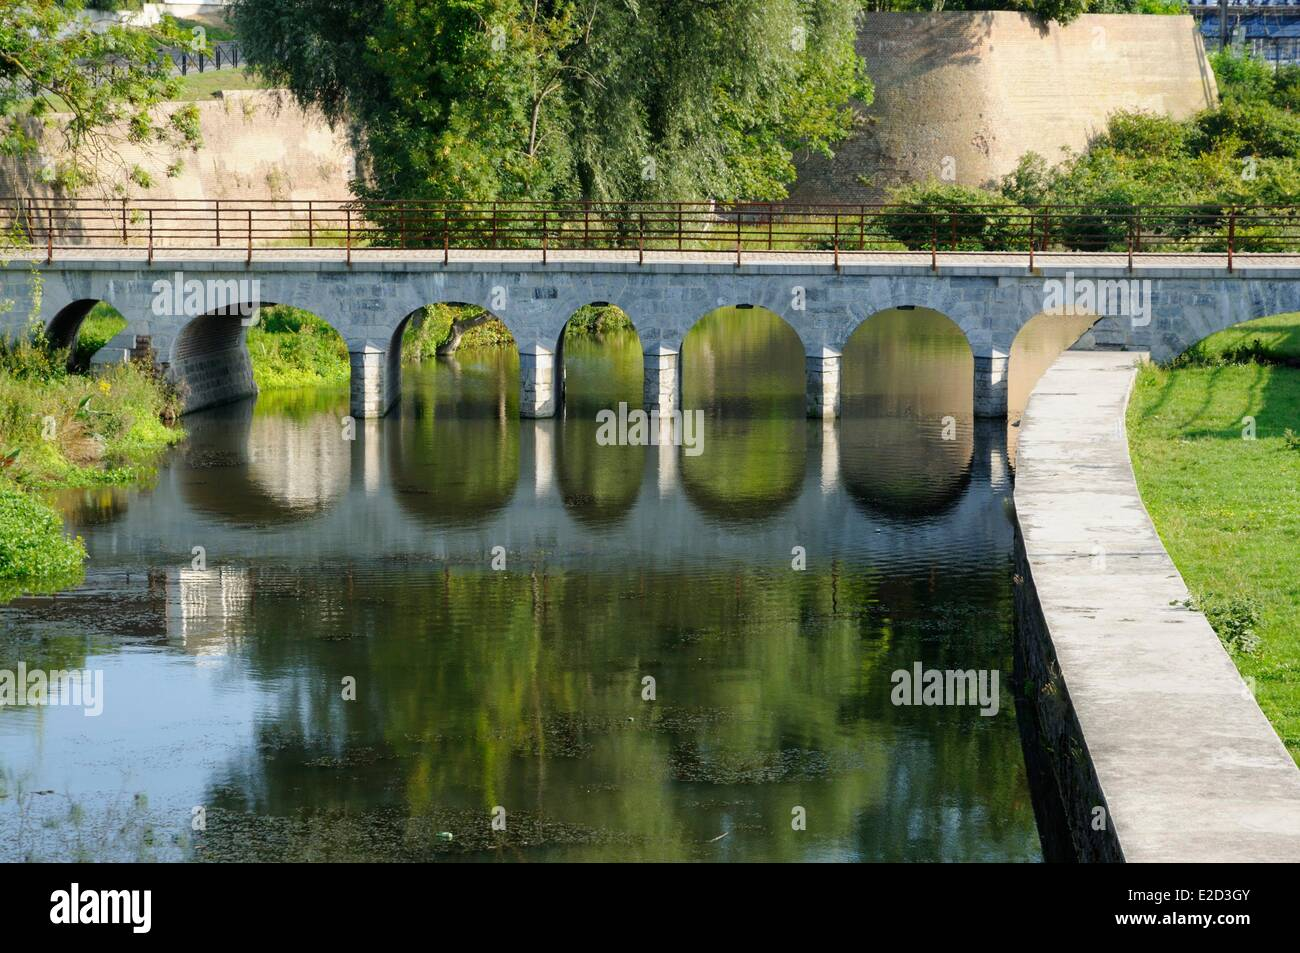 France Nord Valenciennes bridge over the moats filled with water - Stock Image